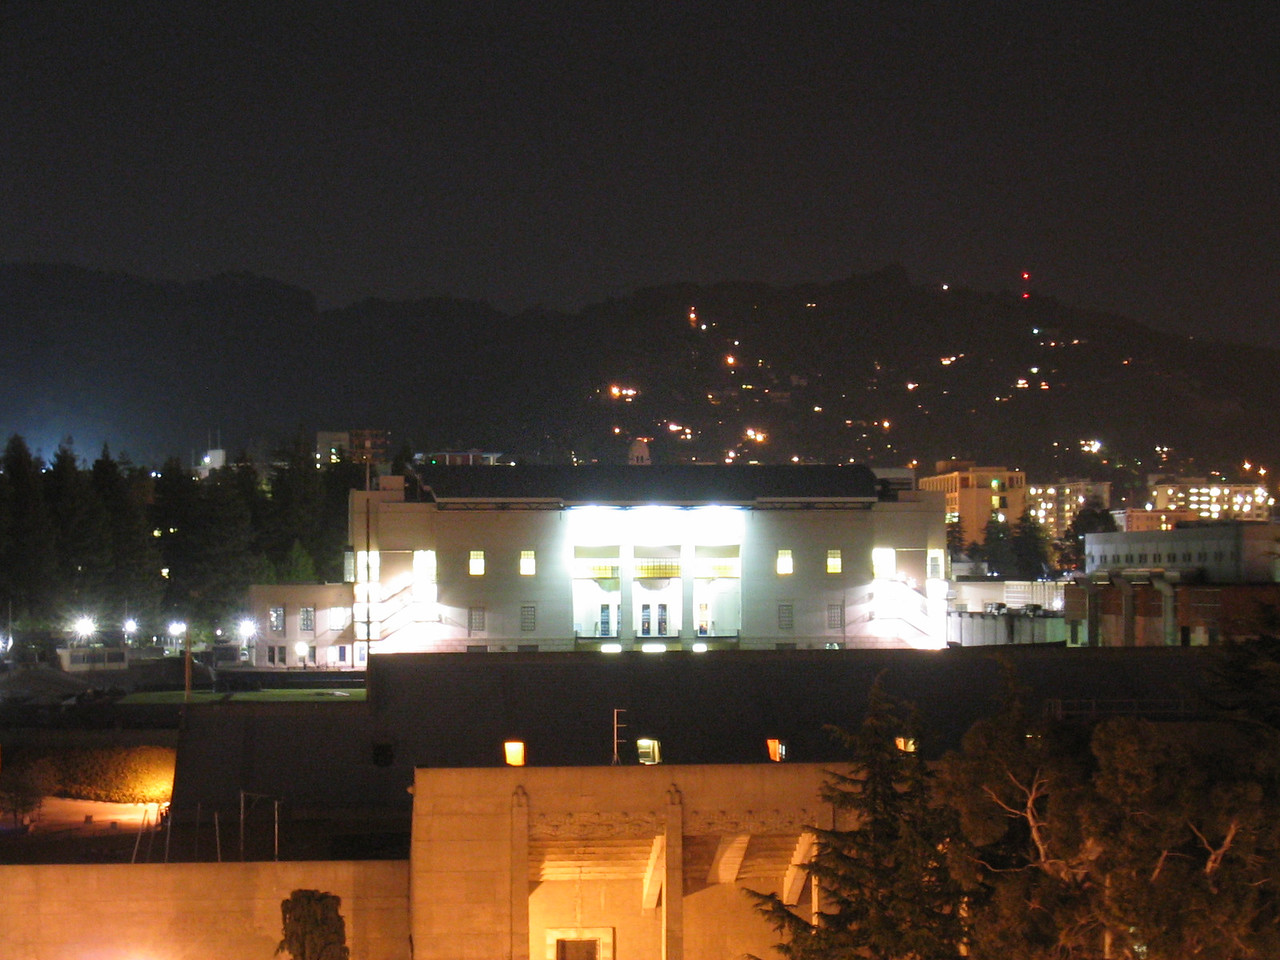 Haas Pavilion from Gaia roof - overexposed, 5-10-03